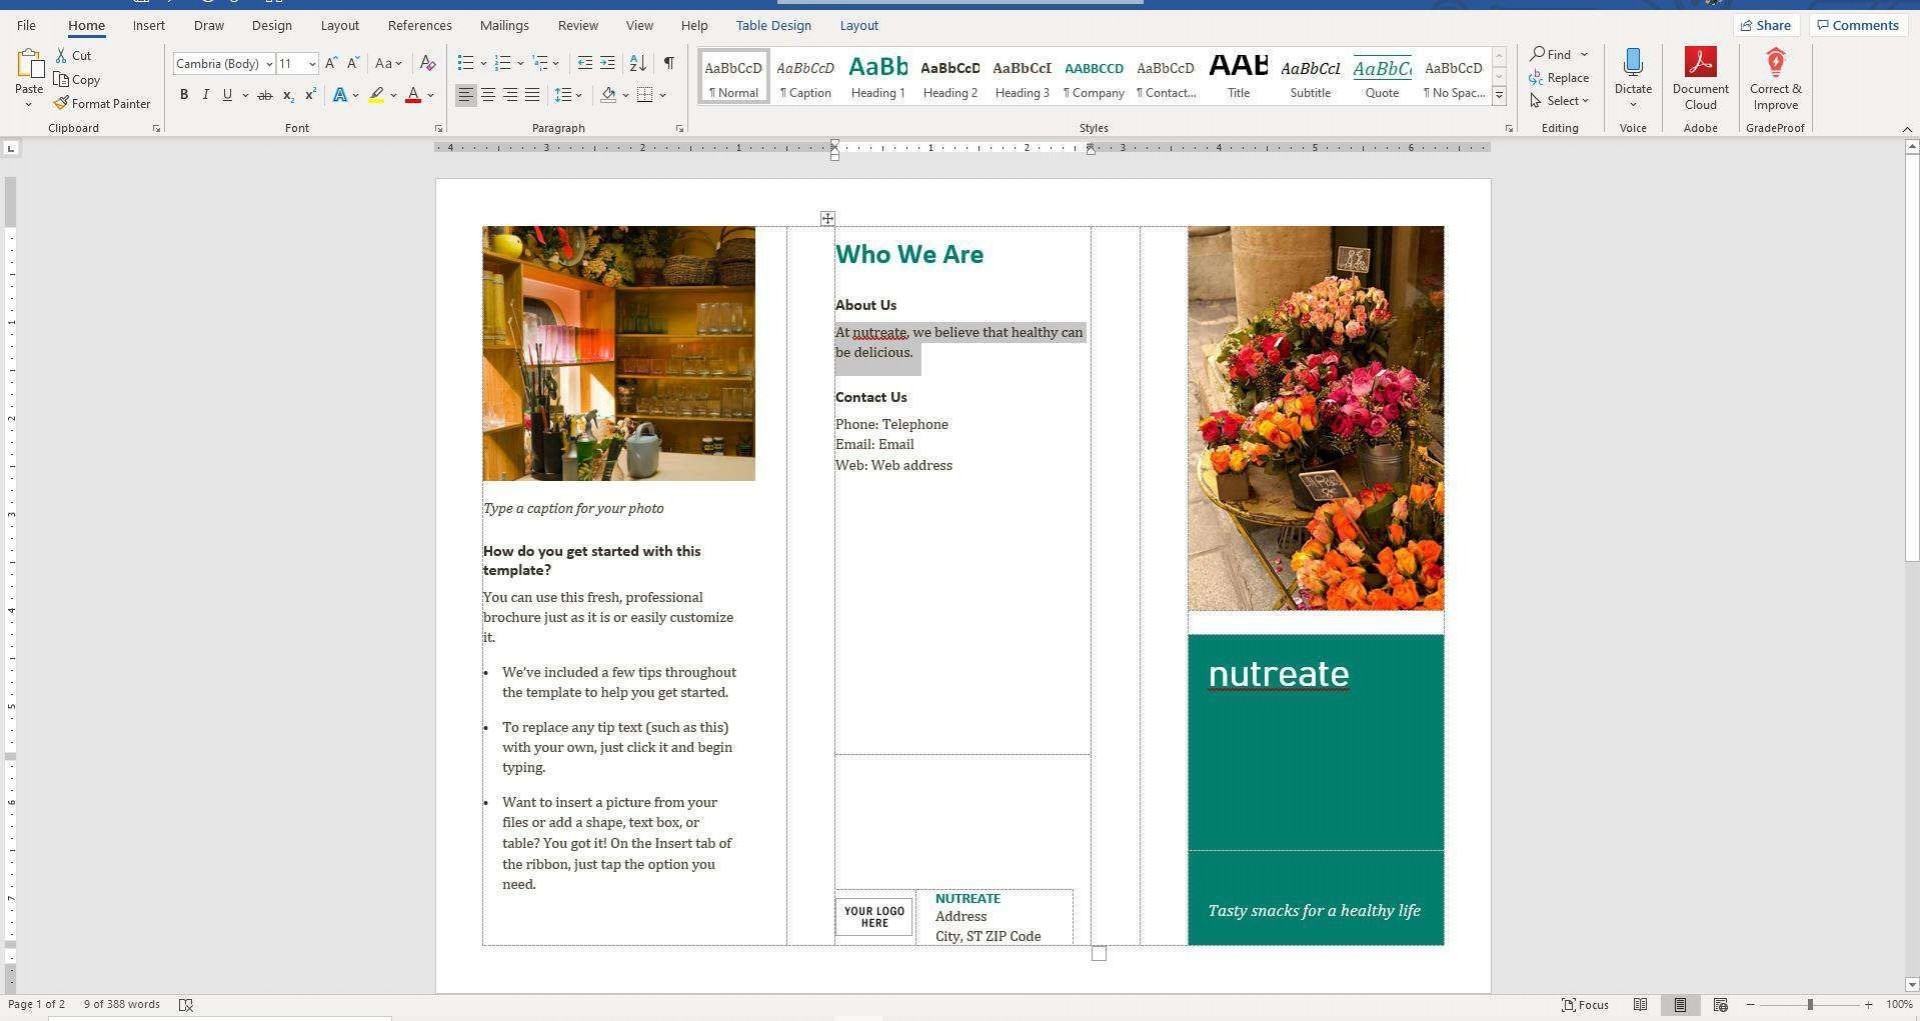 002 Phenomenal M Word 2007 Brochure Template Concept  Templates Microsoft Office Download For Free1920